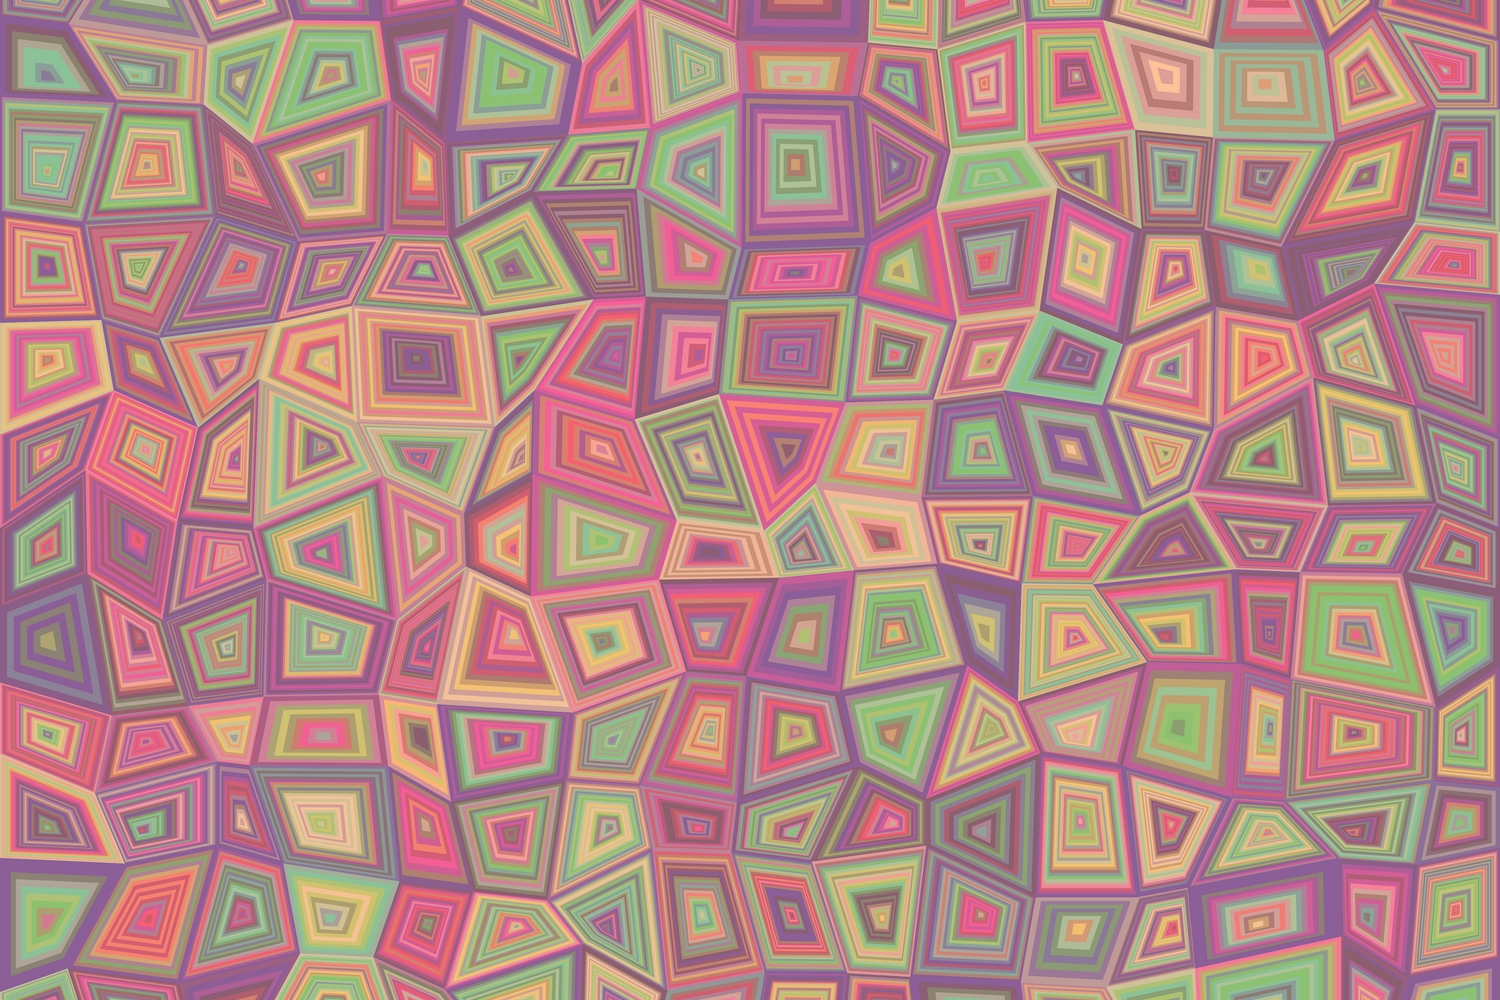 30 colorful rectangle backgrounds (AI, EPS, SVG, JPG 5000x5000) example image 3